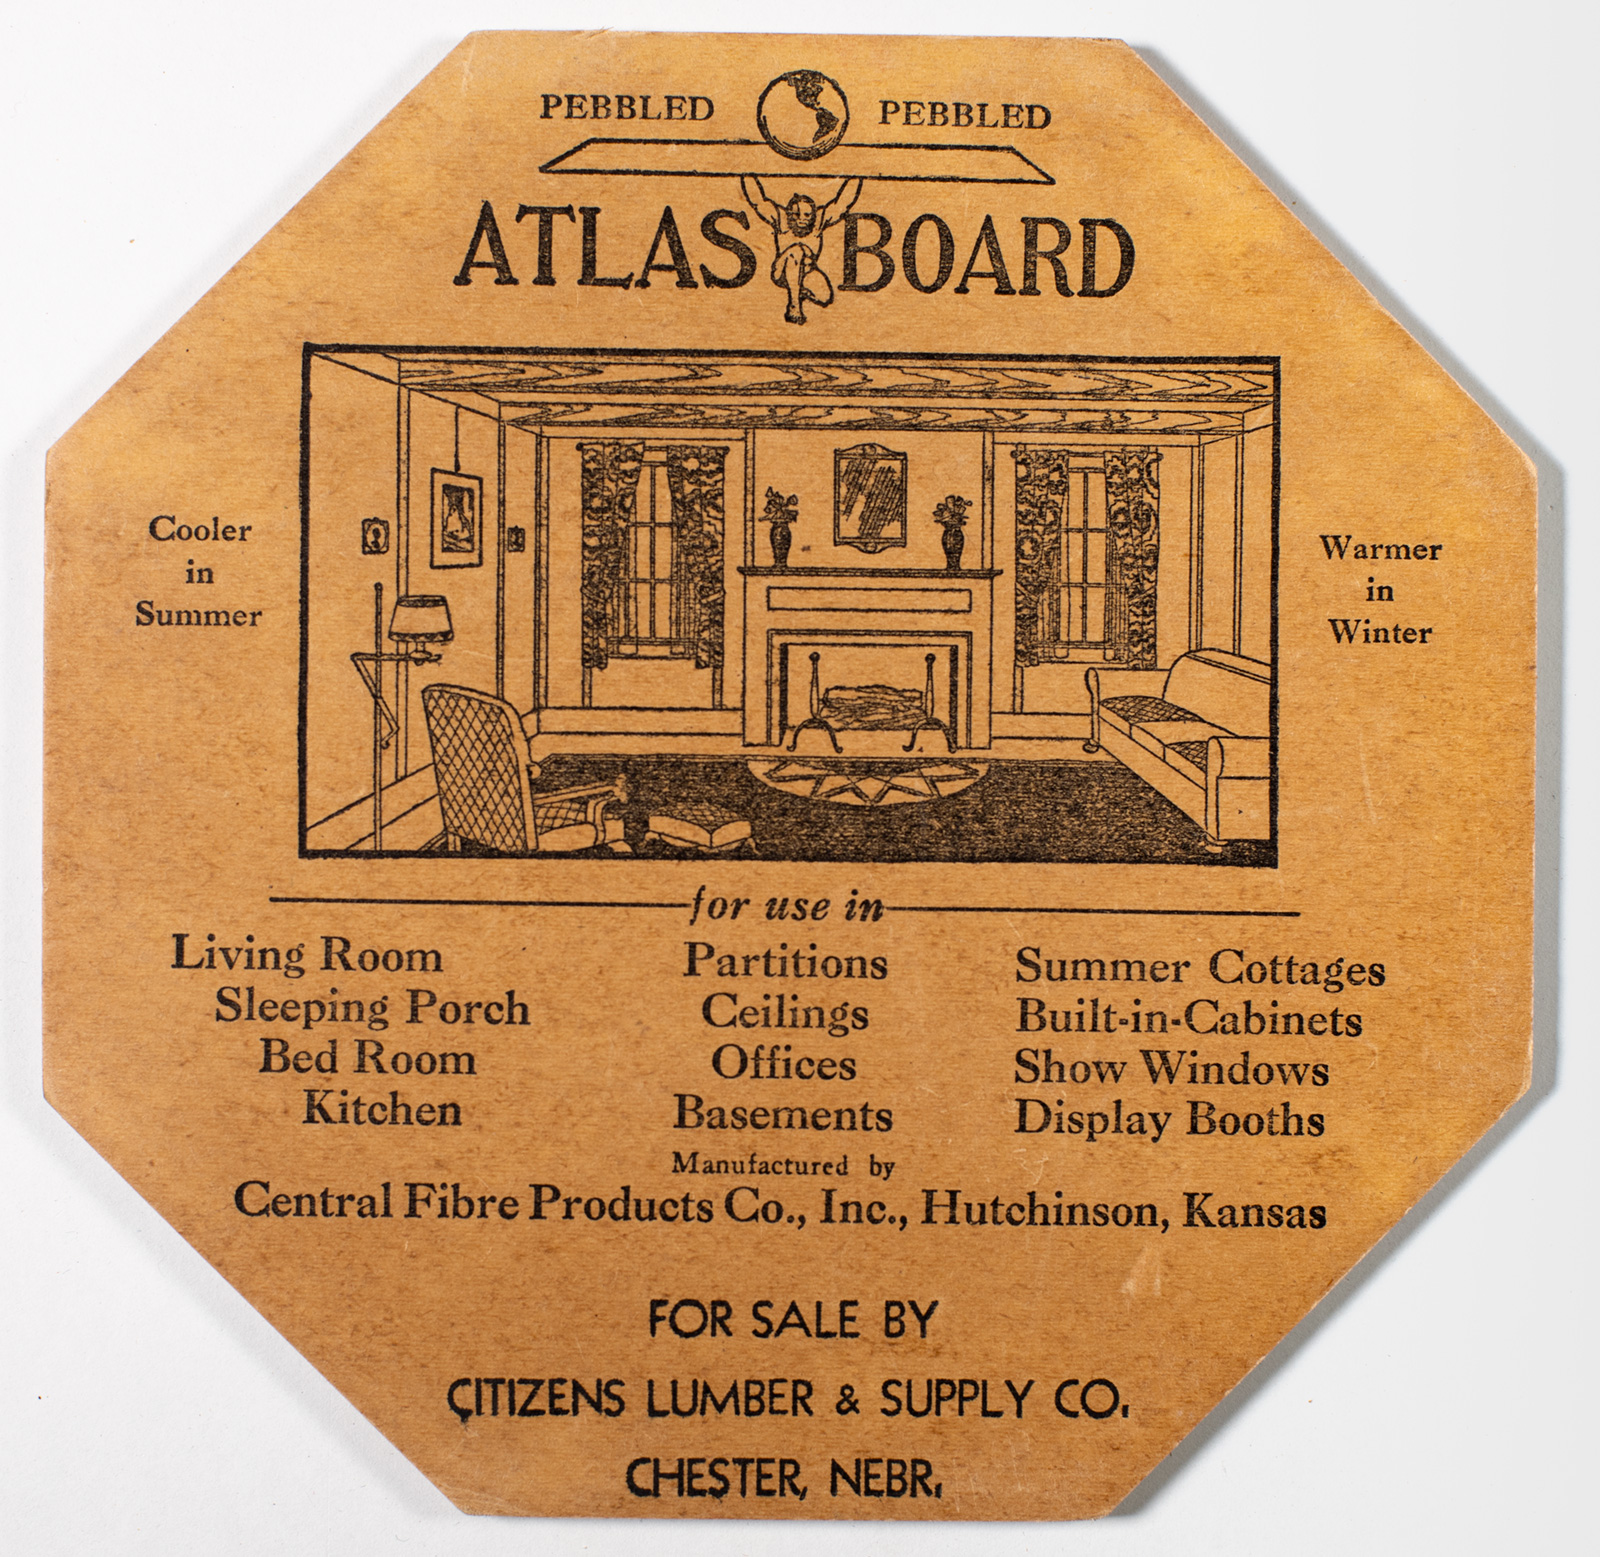 Atlas Board Sample Piece from Citizens Lumber Image